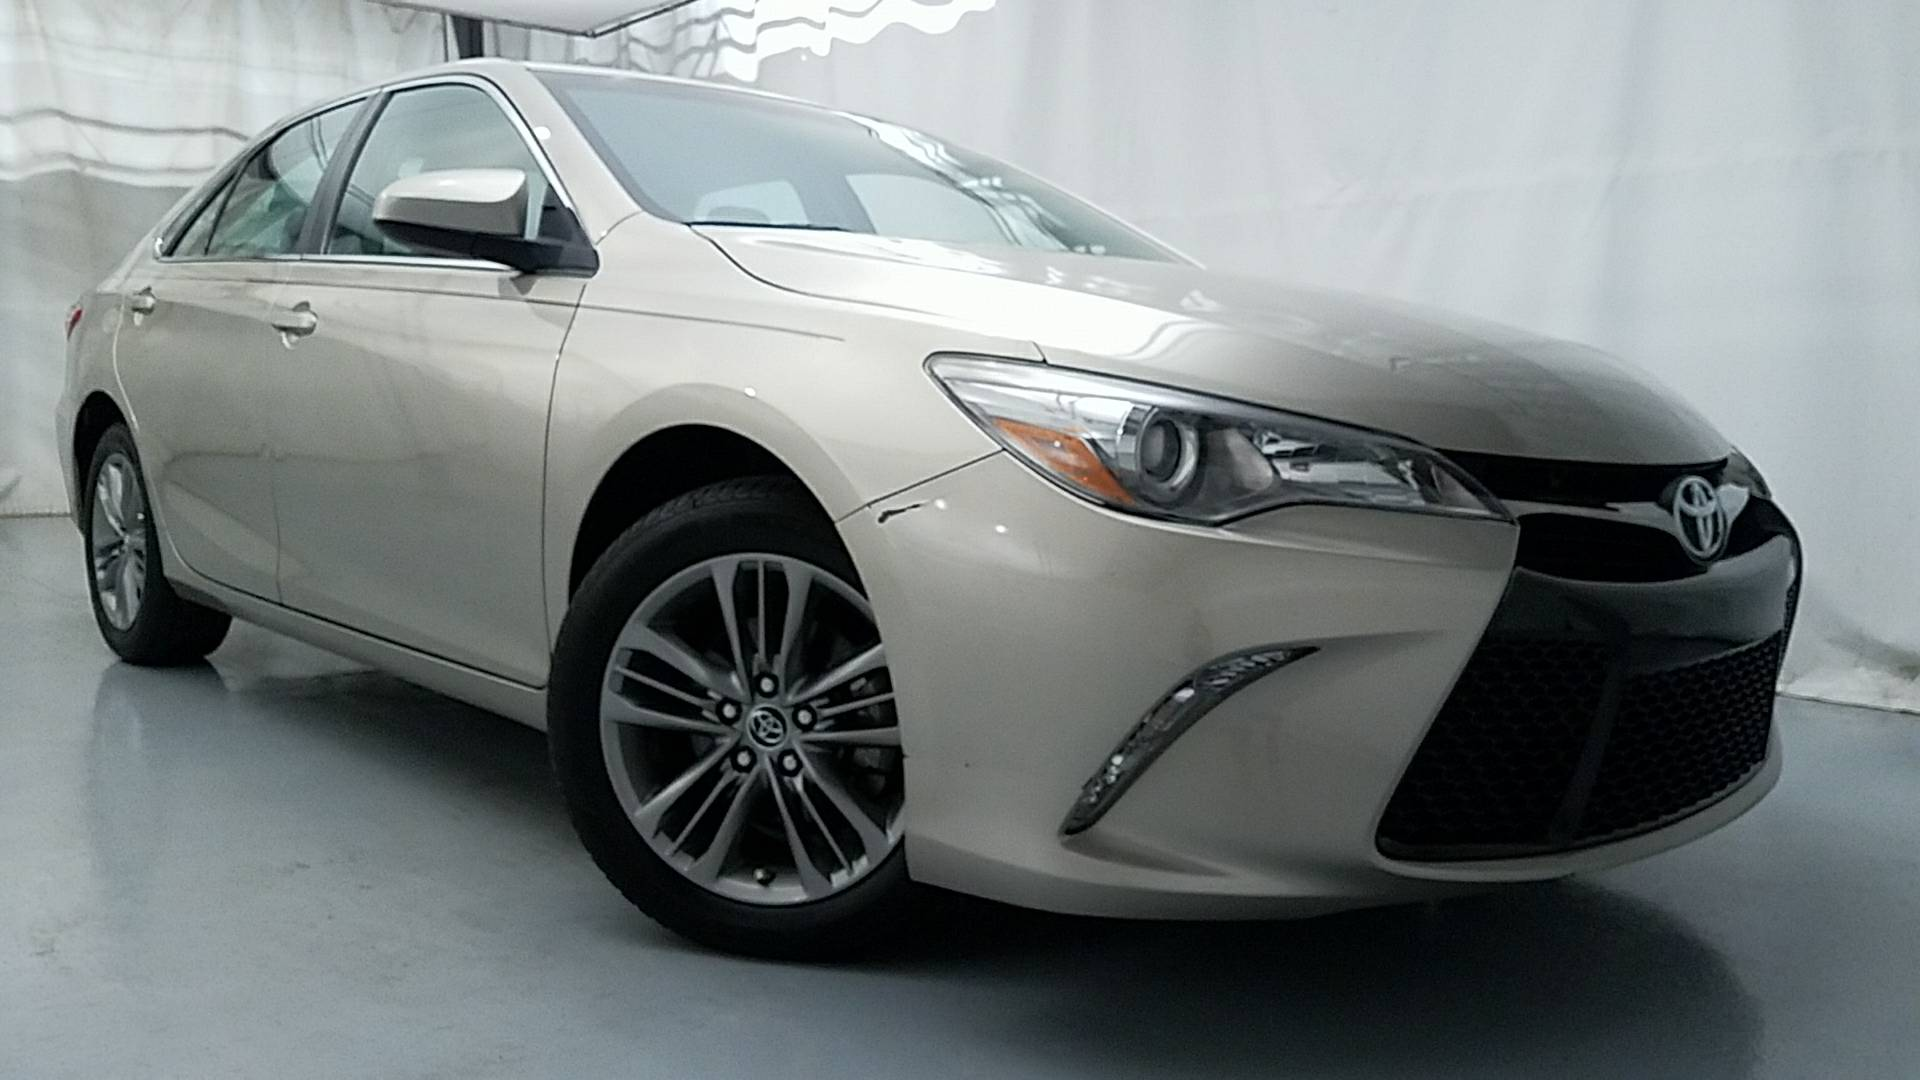 used Toyota Camry at Ross Downing Used Cars Hammond